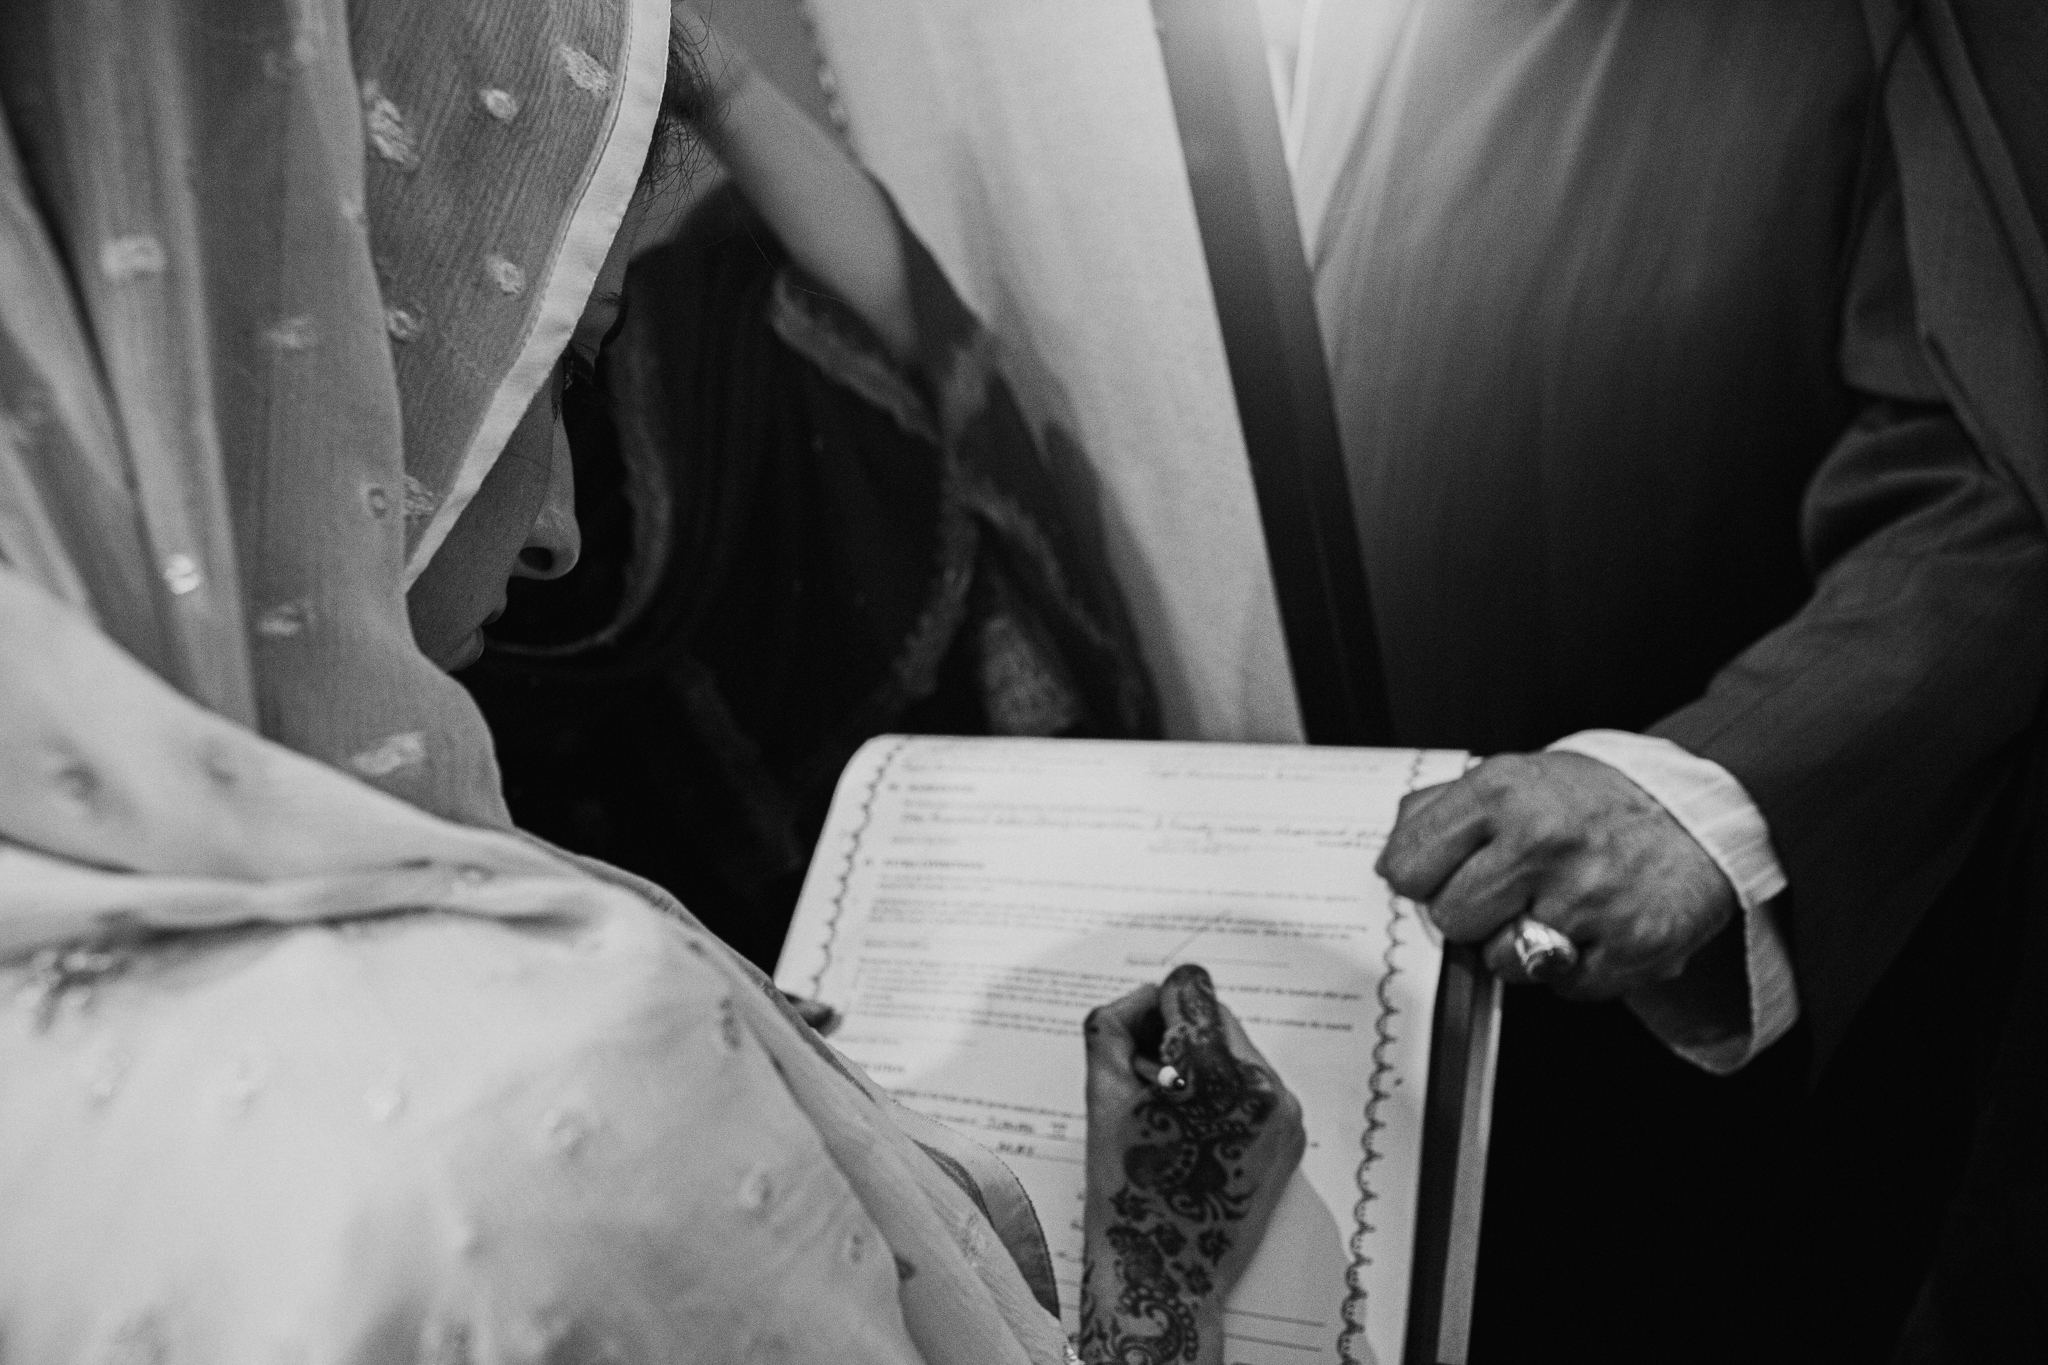 Nikah wedding traditional ceremony documentary photo